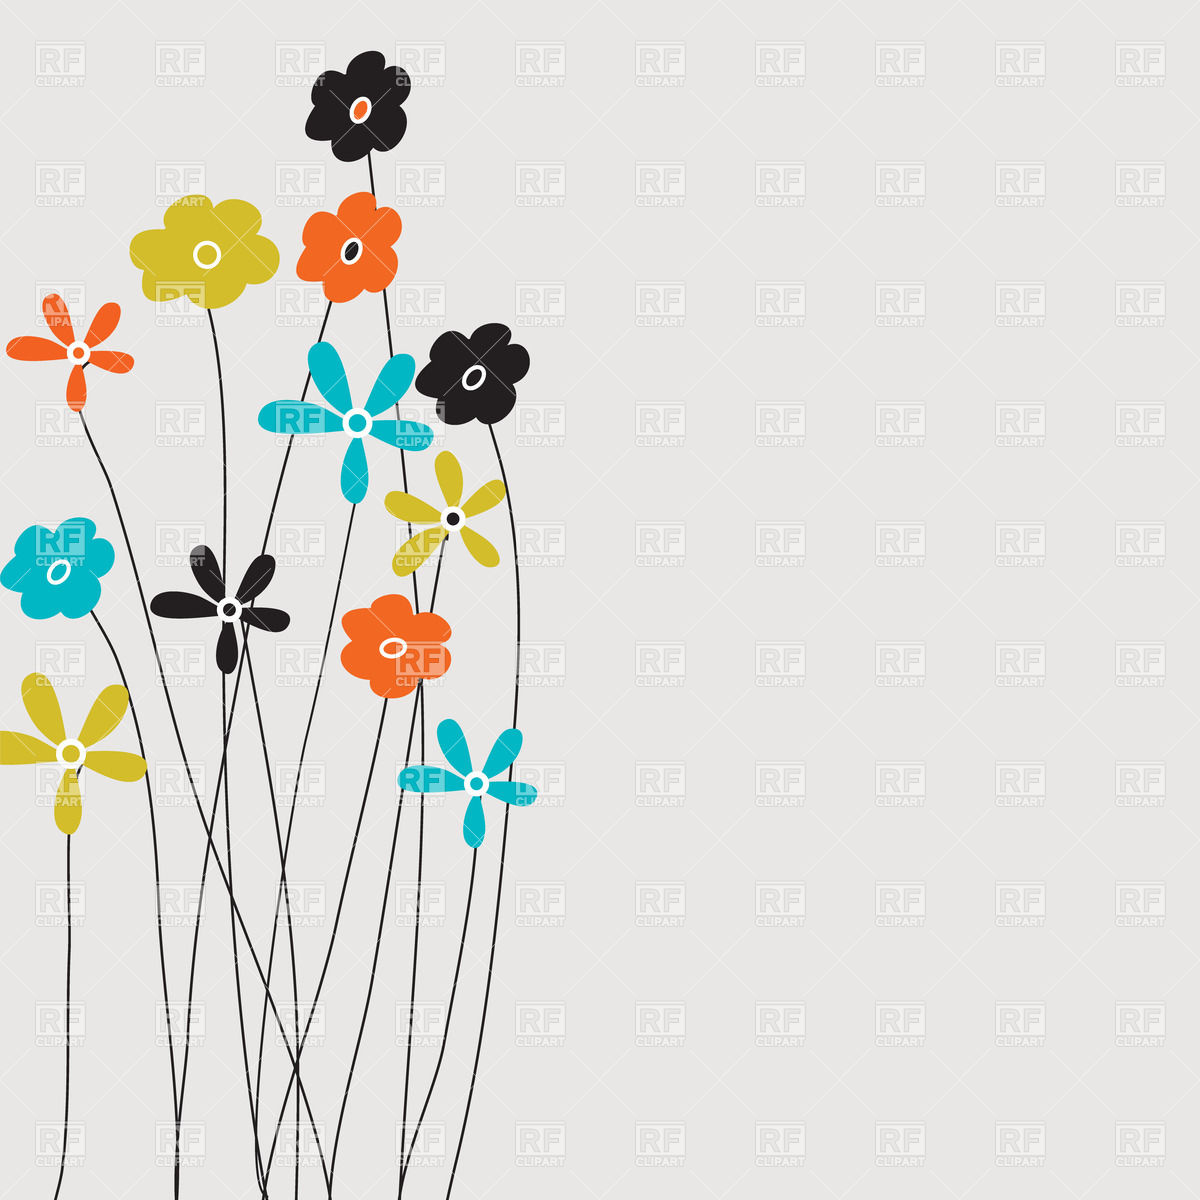 Several cartoon flowers on long stems Vector Image #23585.